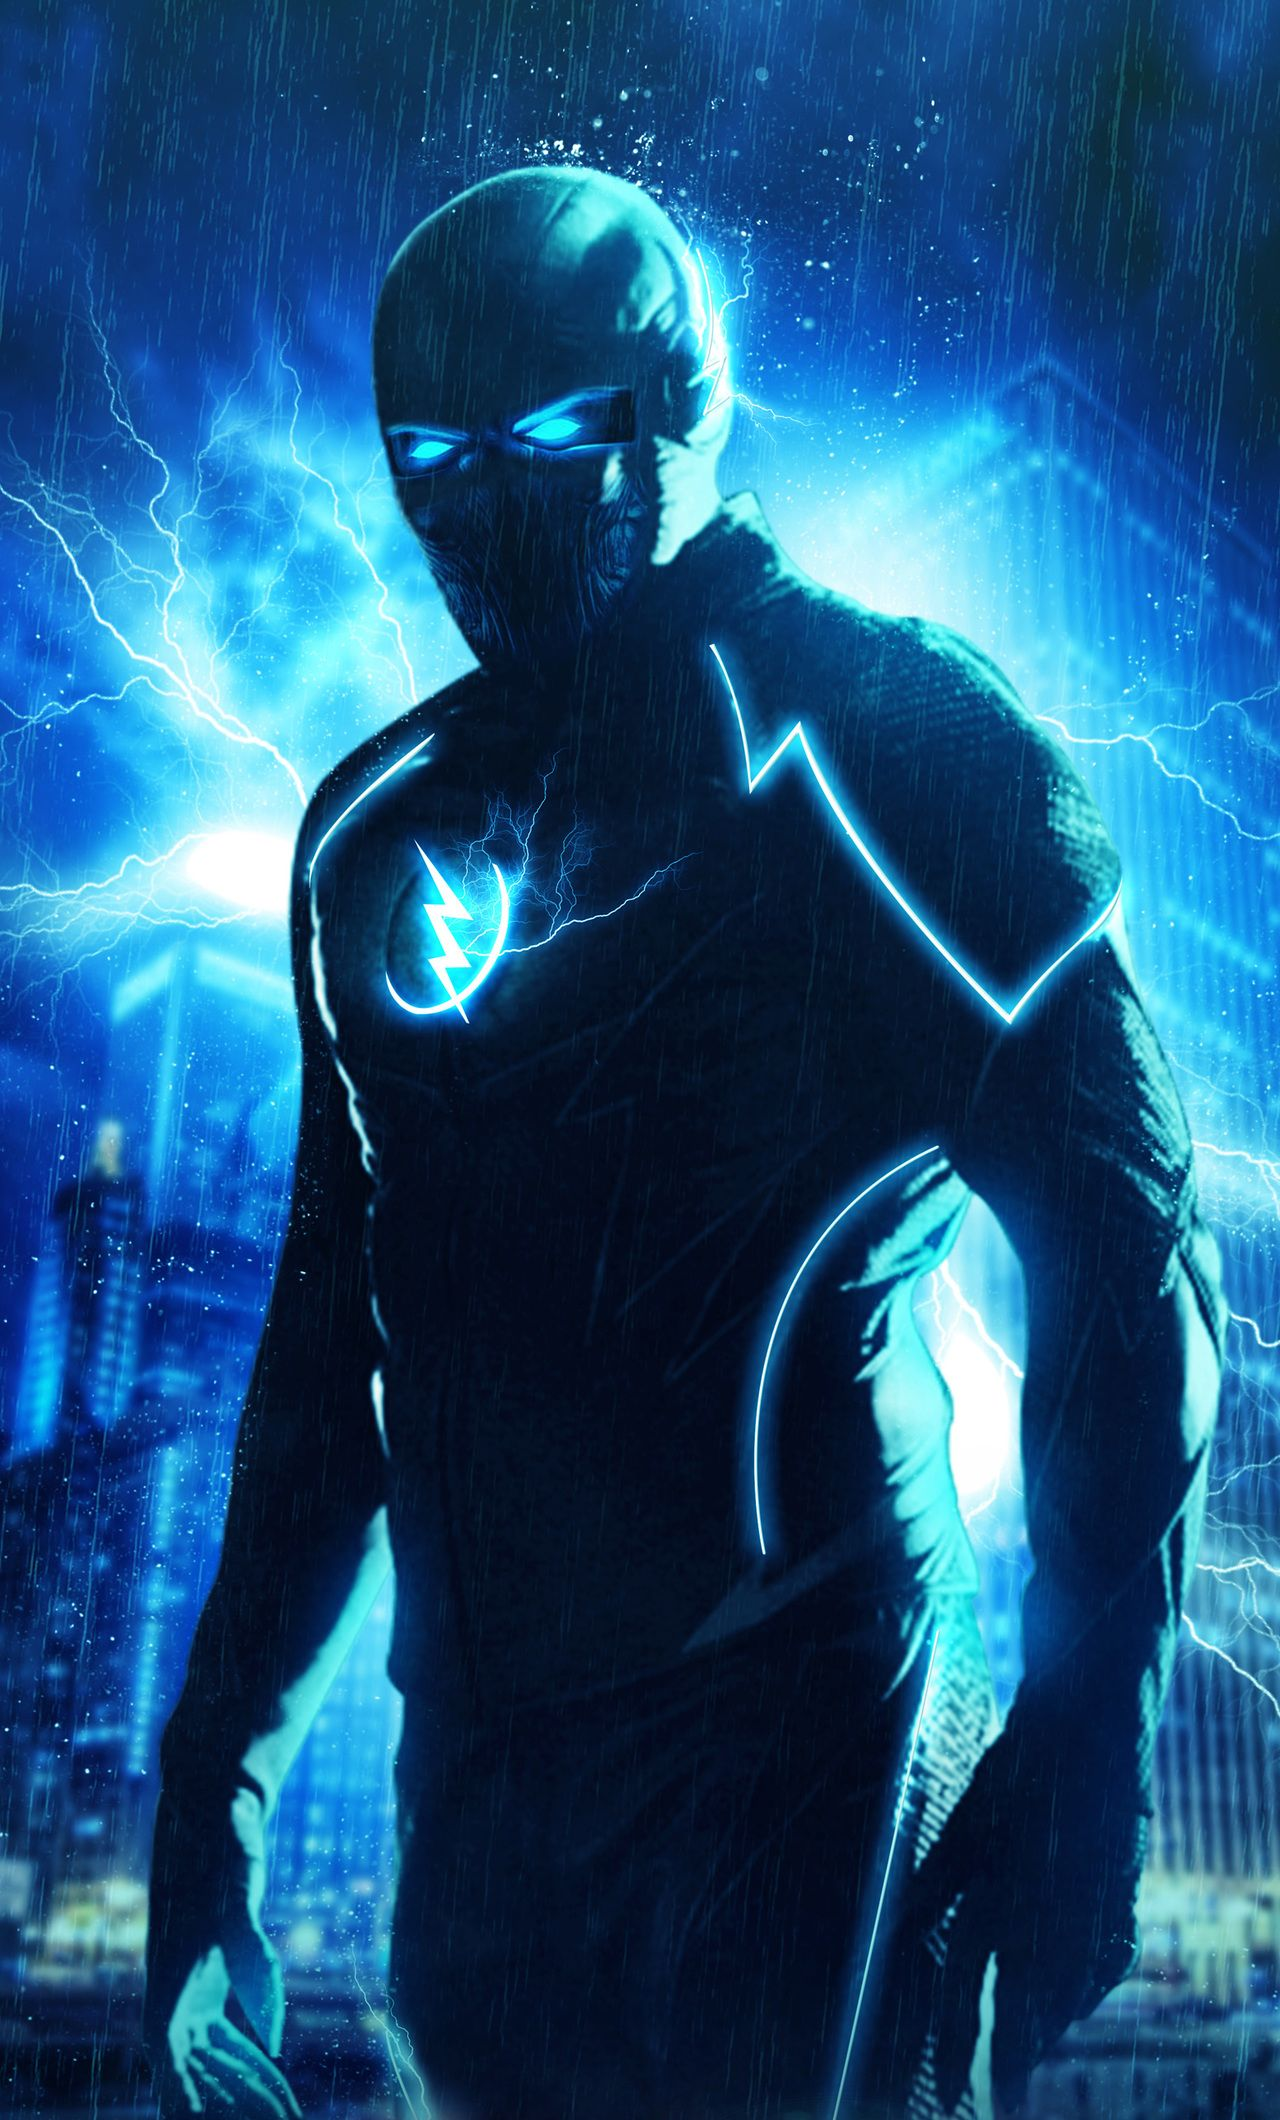 The Flash Zoom 4K Wallpapers - Top Free The Flash Zoom 4K ...